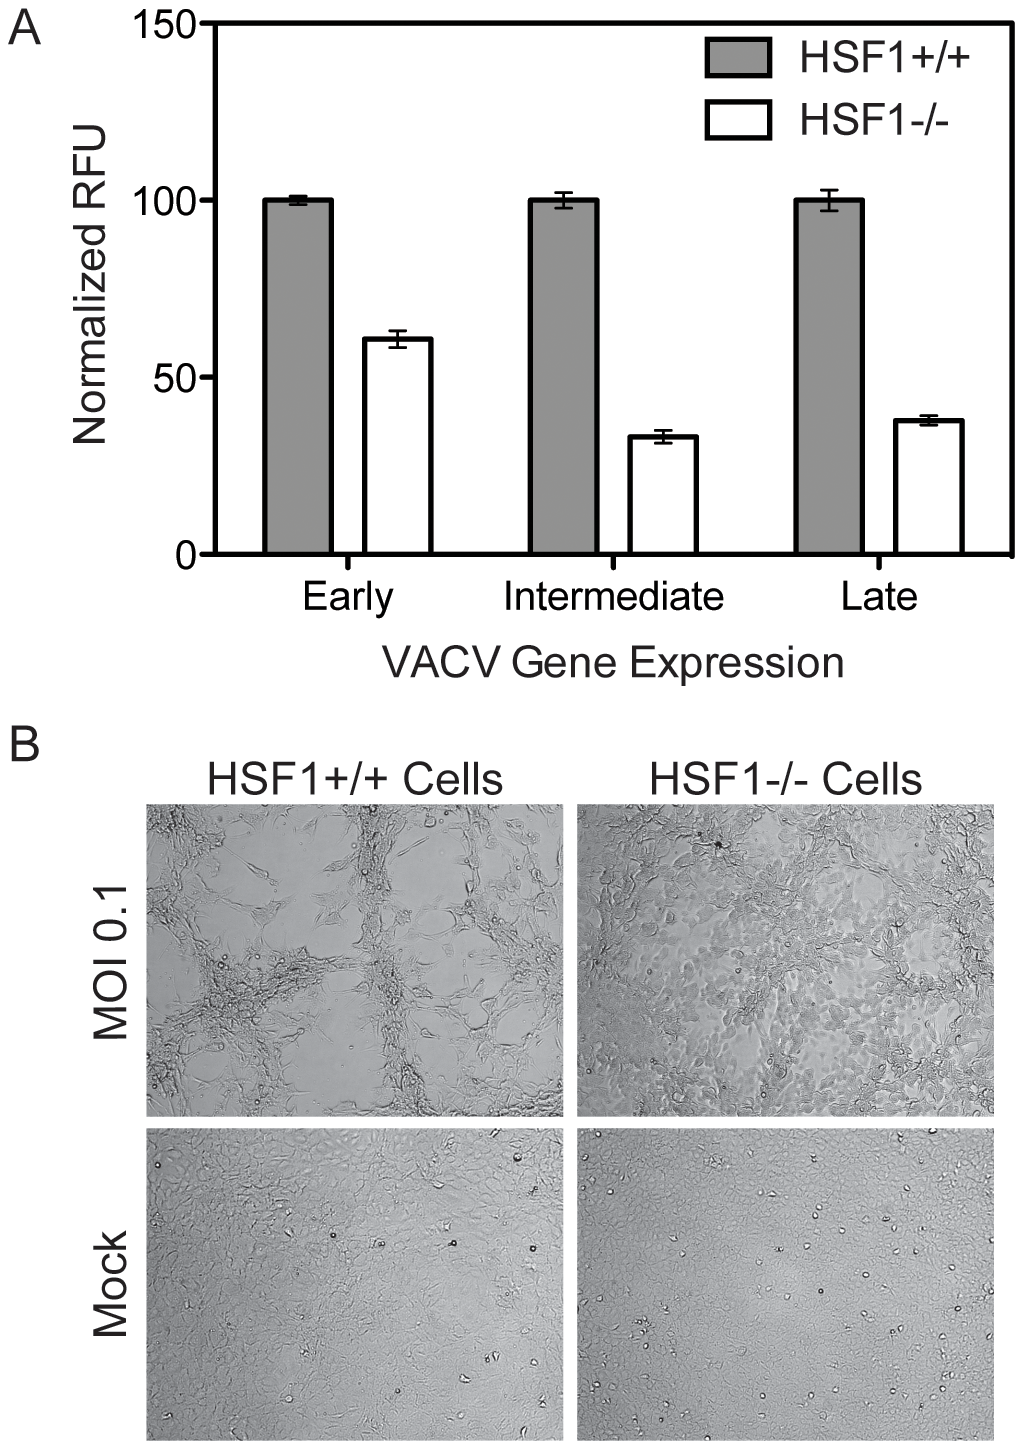 HSF1 null MEF cells support significantly less VACV infection.